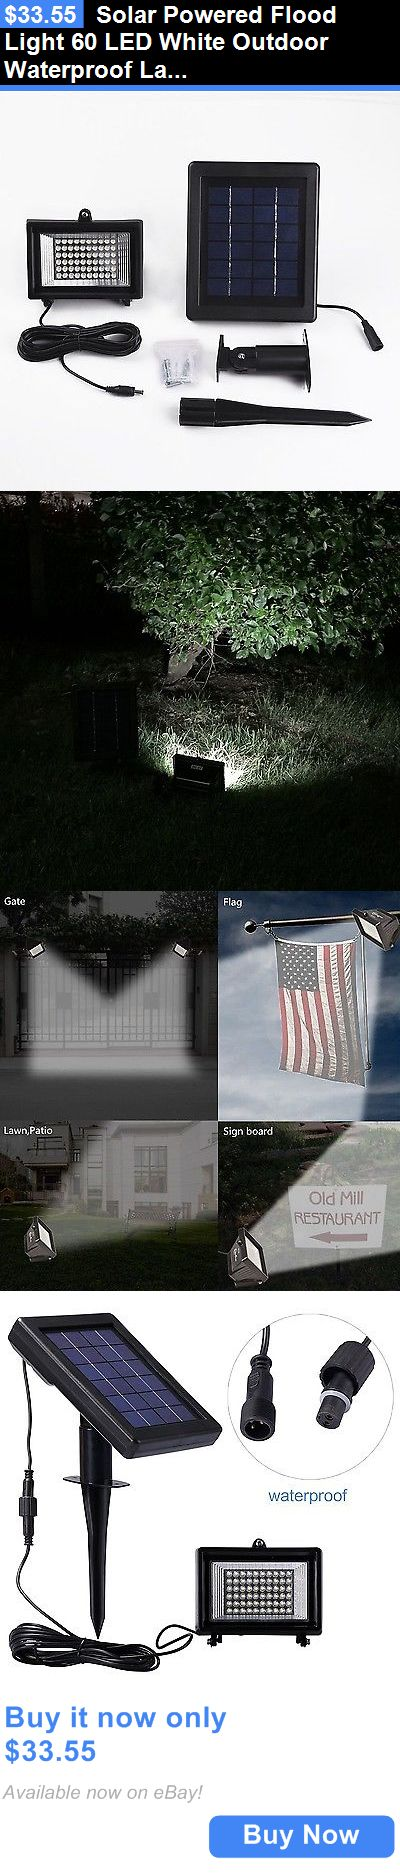 farm and garden: Solar Powered Flood Light 60 Led White Outdoor Waterproof Landscape Security... BUY IT NOW ONLY: $33.55